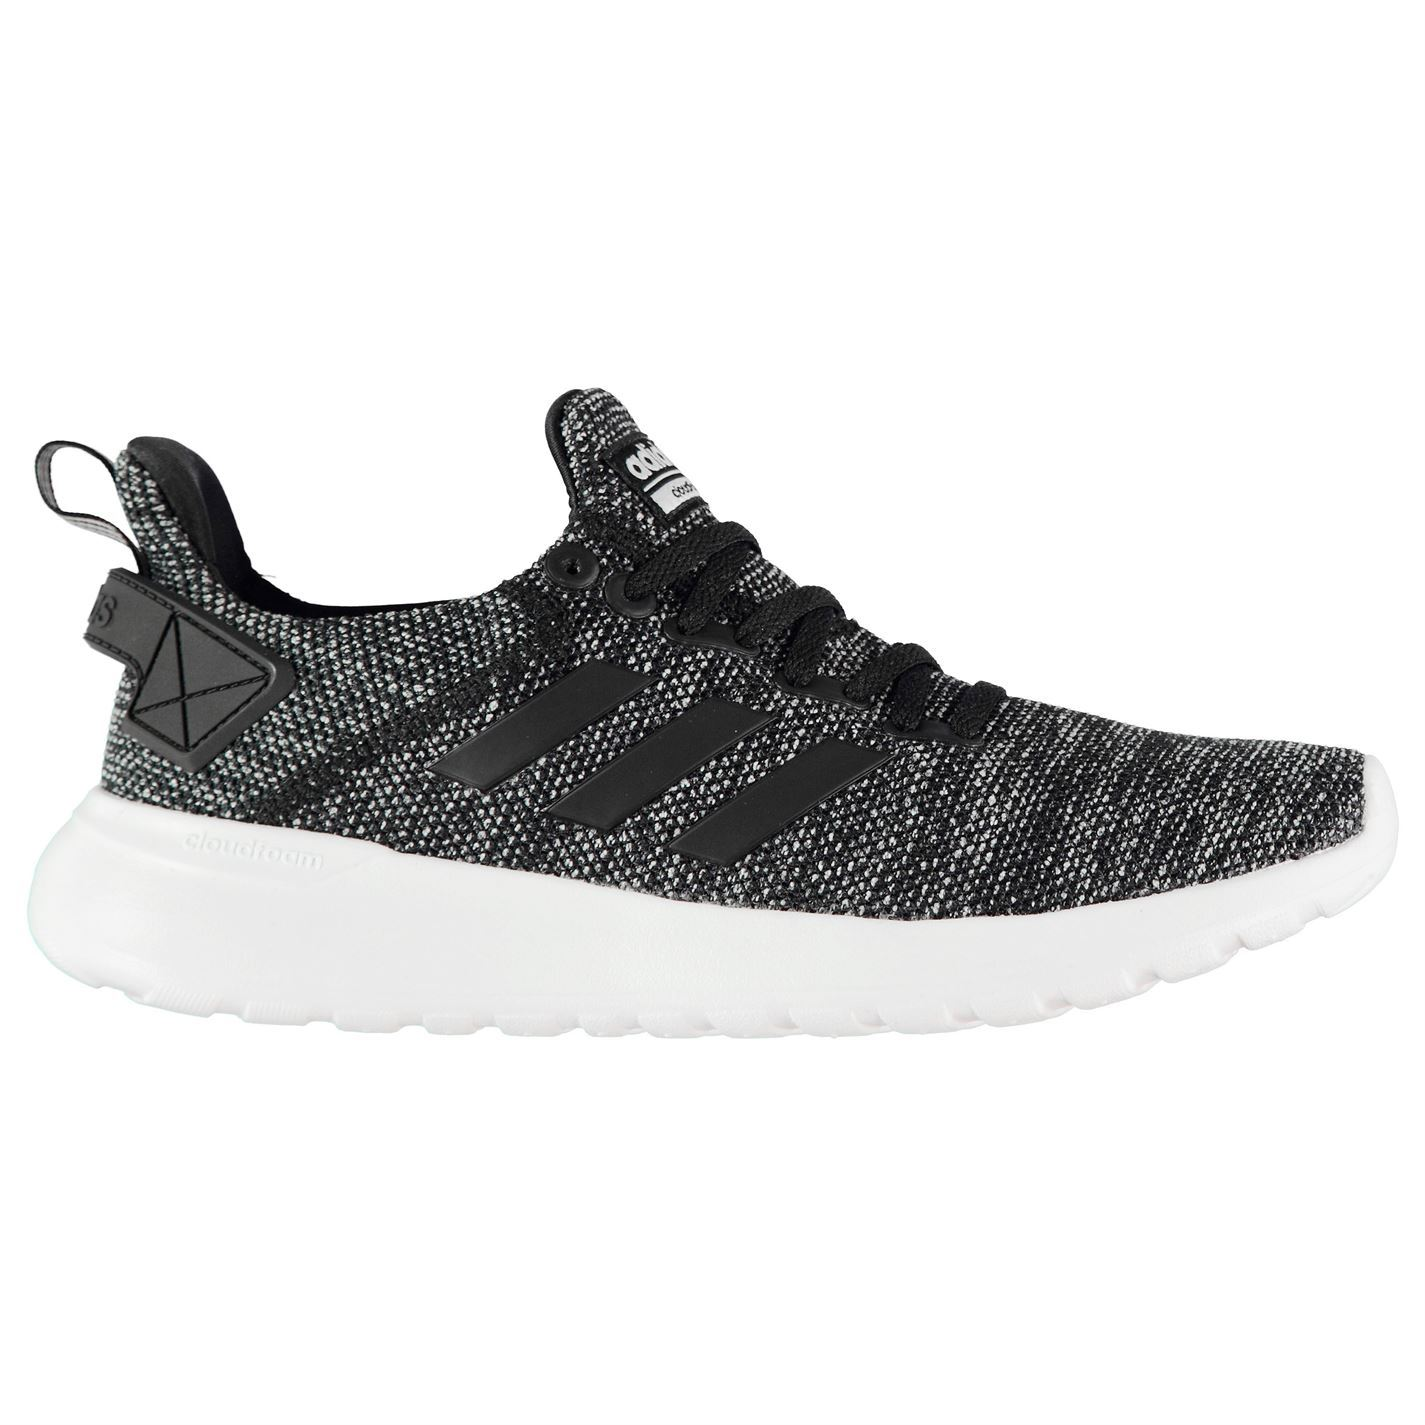 4a25ee87c481be adidas Cloudfoam Lite Racer BYD Trainers Mens Black White Sports Shoes  Sneakers